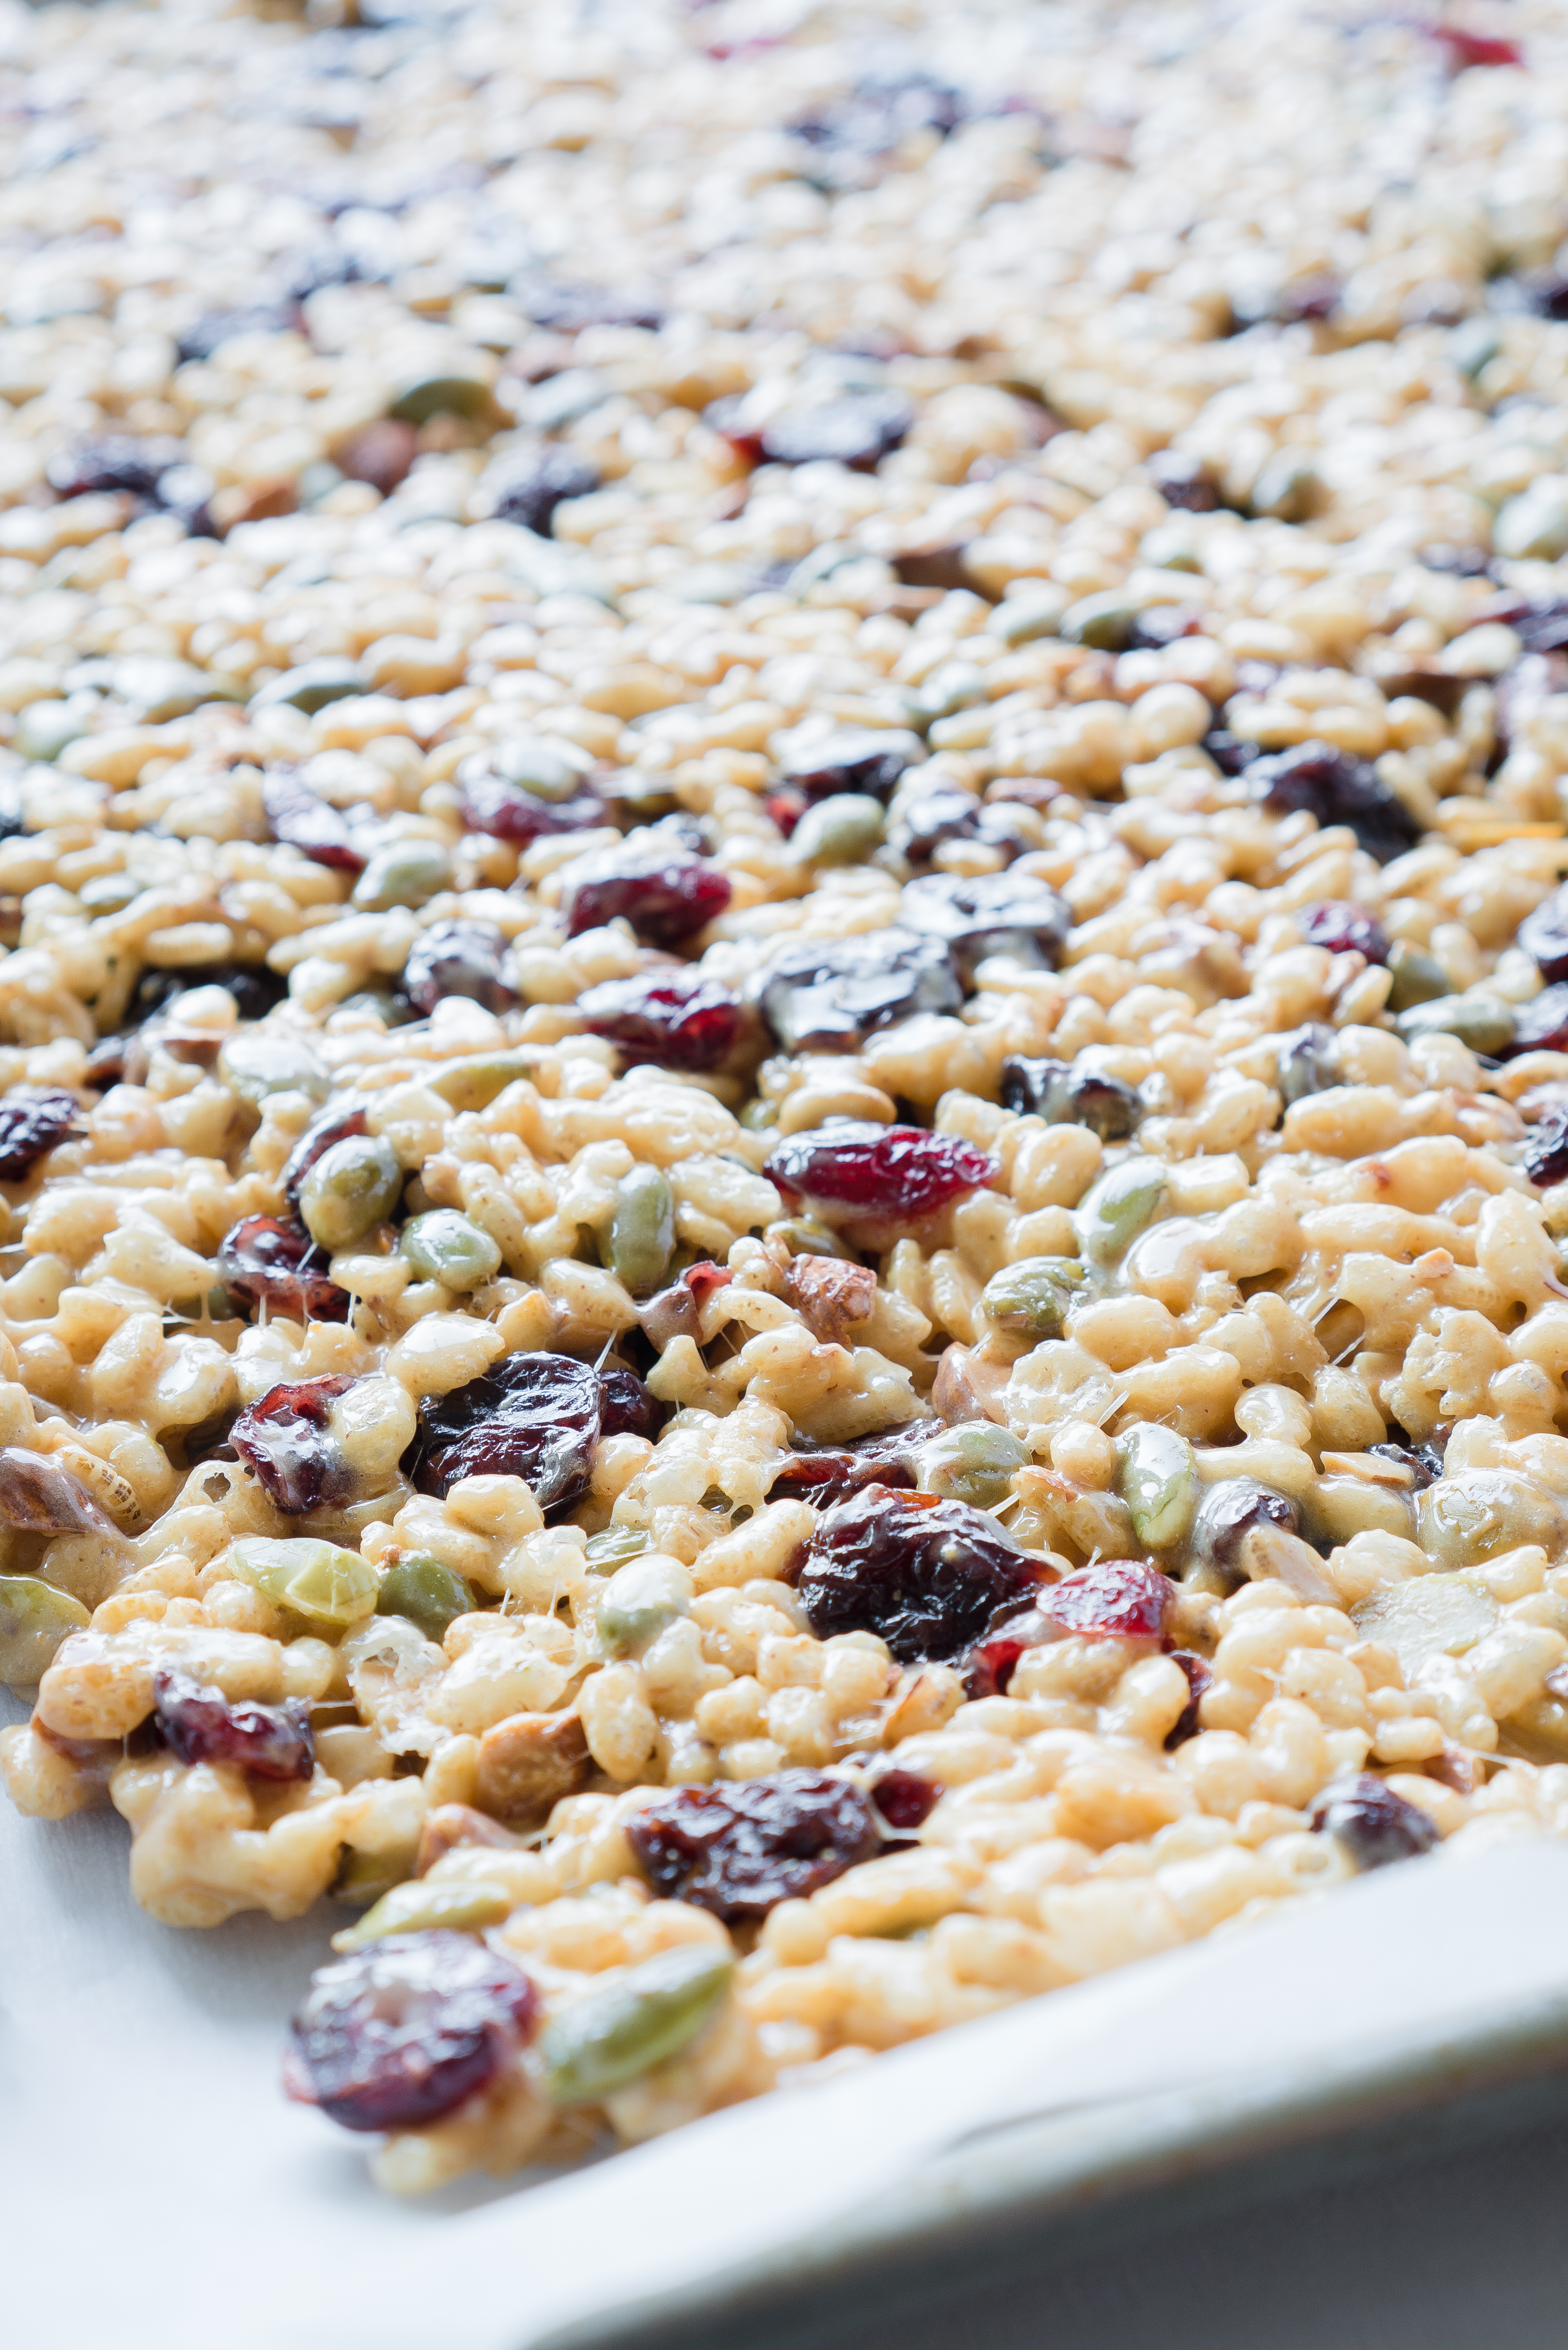 Peanut Butter Trail Mix Bars – Healthy recipe for Peanut Butter Trail Mix Bars! Uses toasted almonds, pepitas, dried cranberries, tart dried cherries, brown rice cereal, creamy peanut butter, and marshmallows! We love that this no-bake recipe uses coconut oil instead of butter ♥ | freeyourfork.com